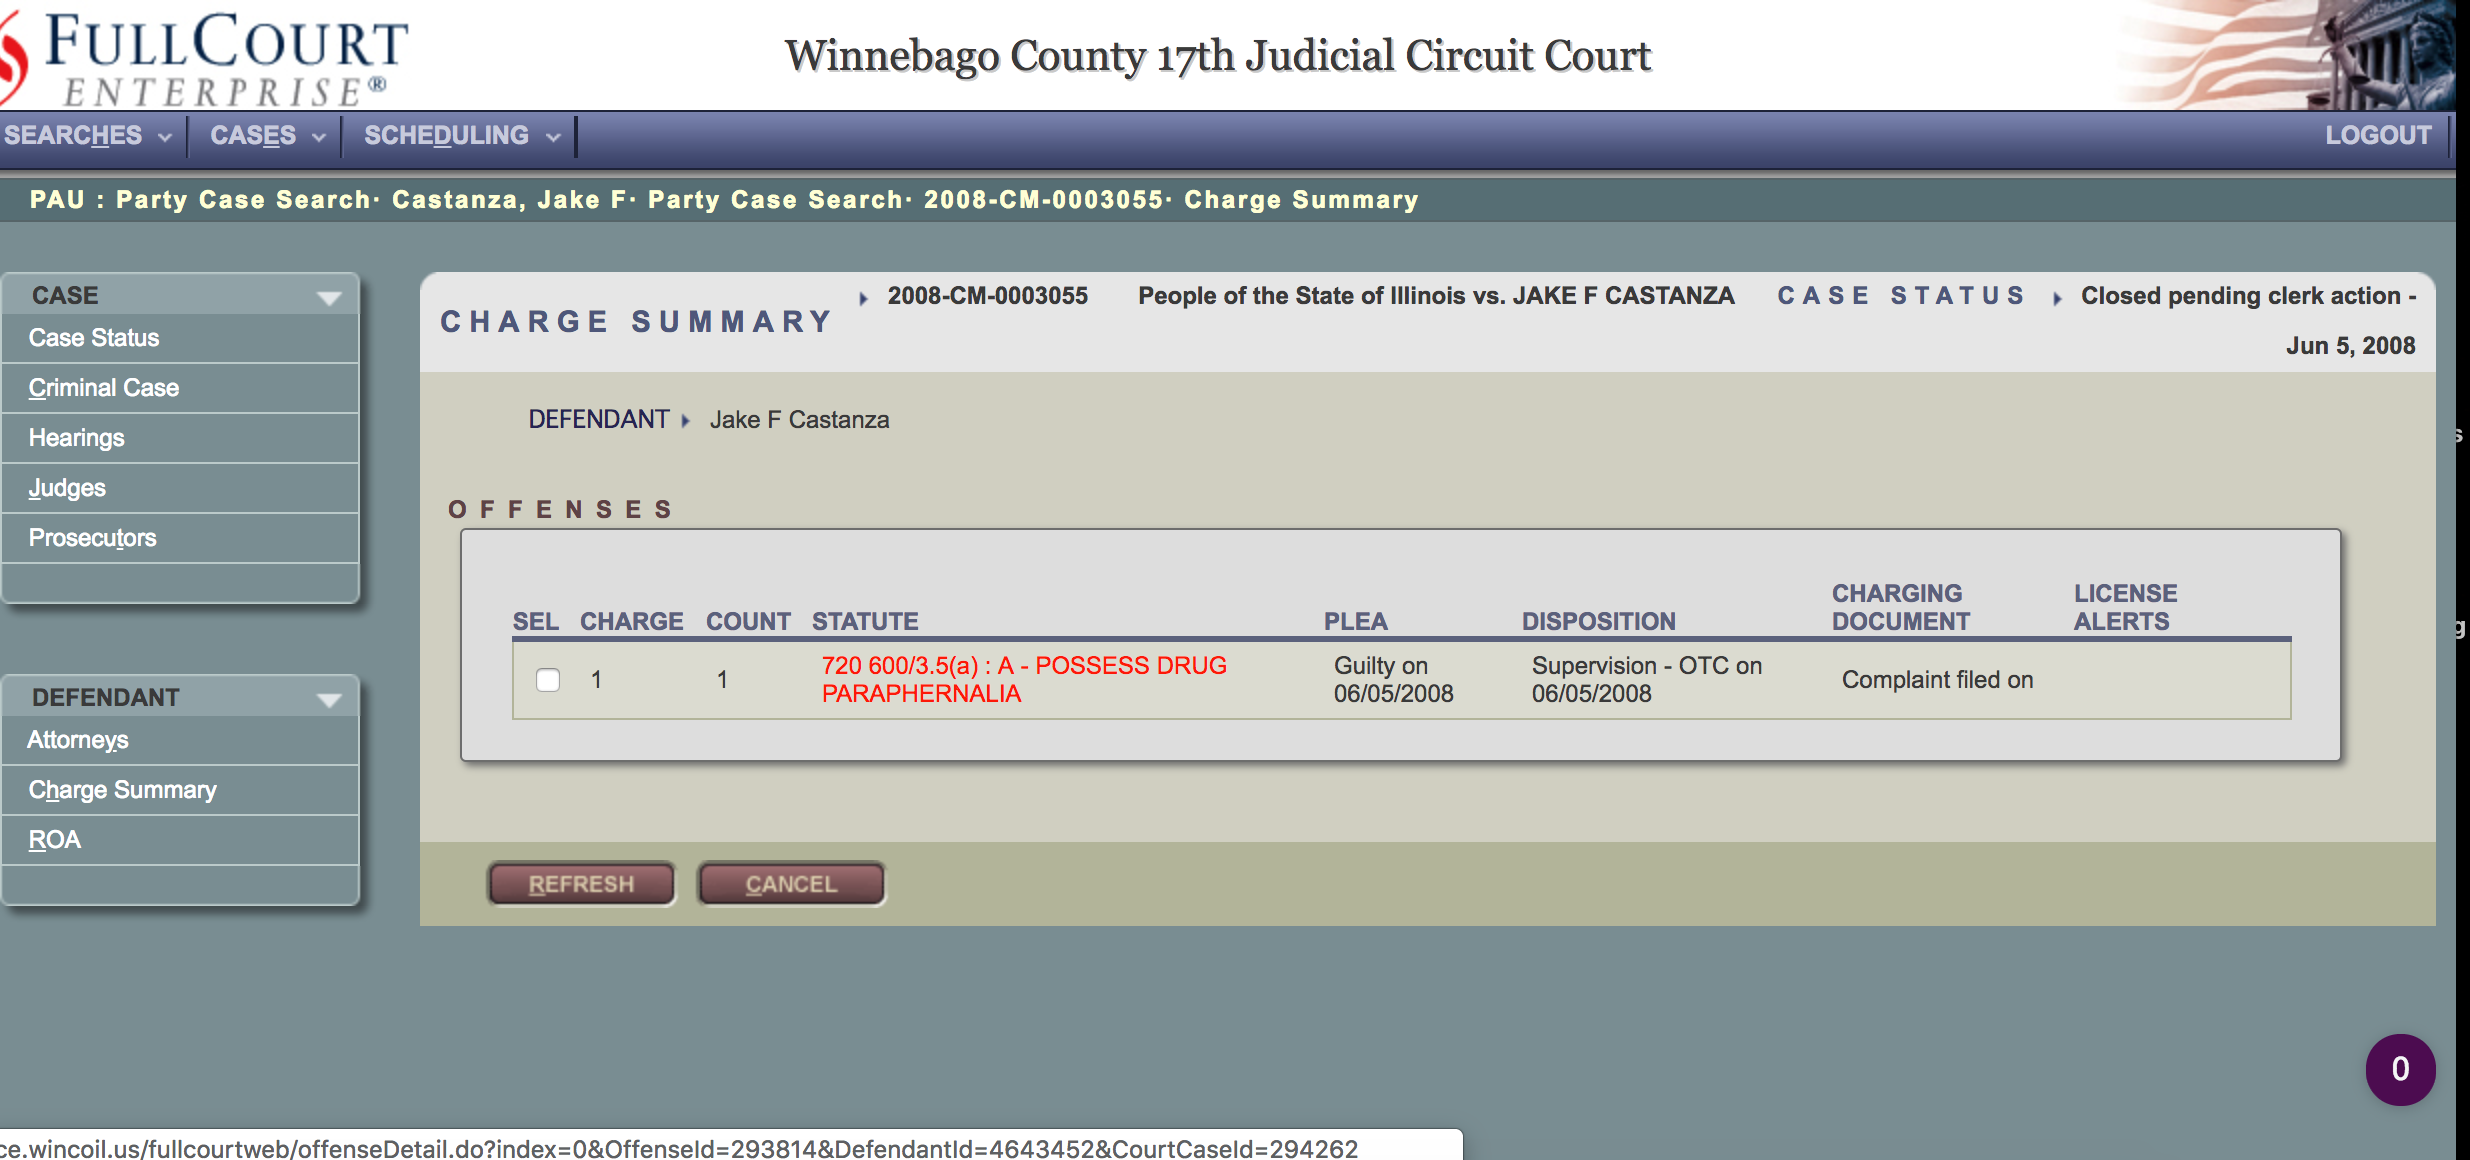 28 year-old Jake Castanza says he was never arrested for possession of drug paraphernalia. But Winnebago County court records say otherwise.